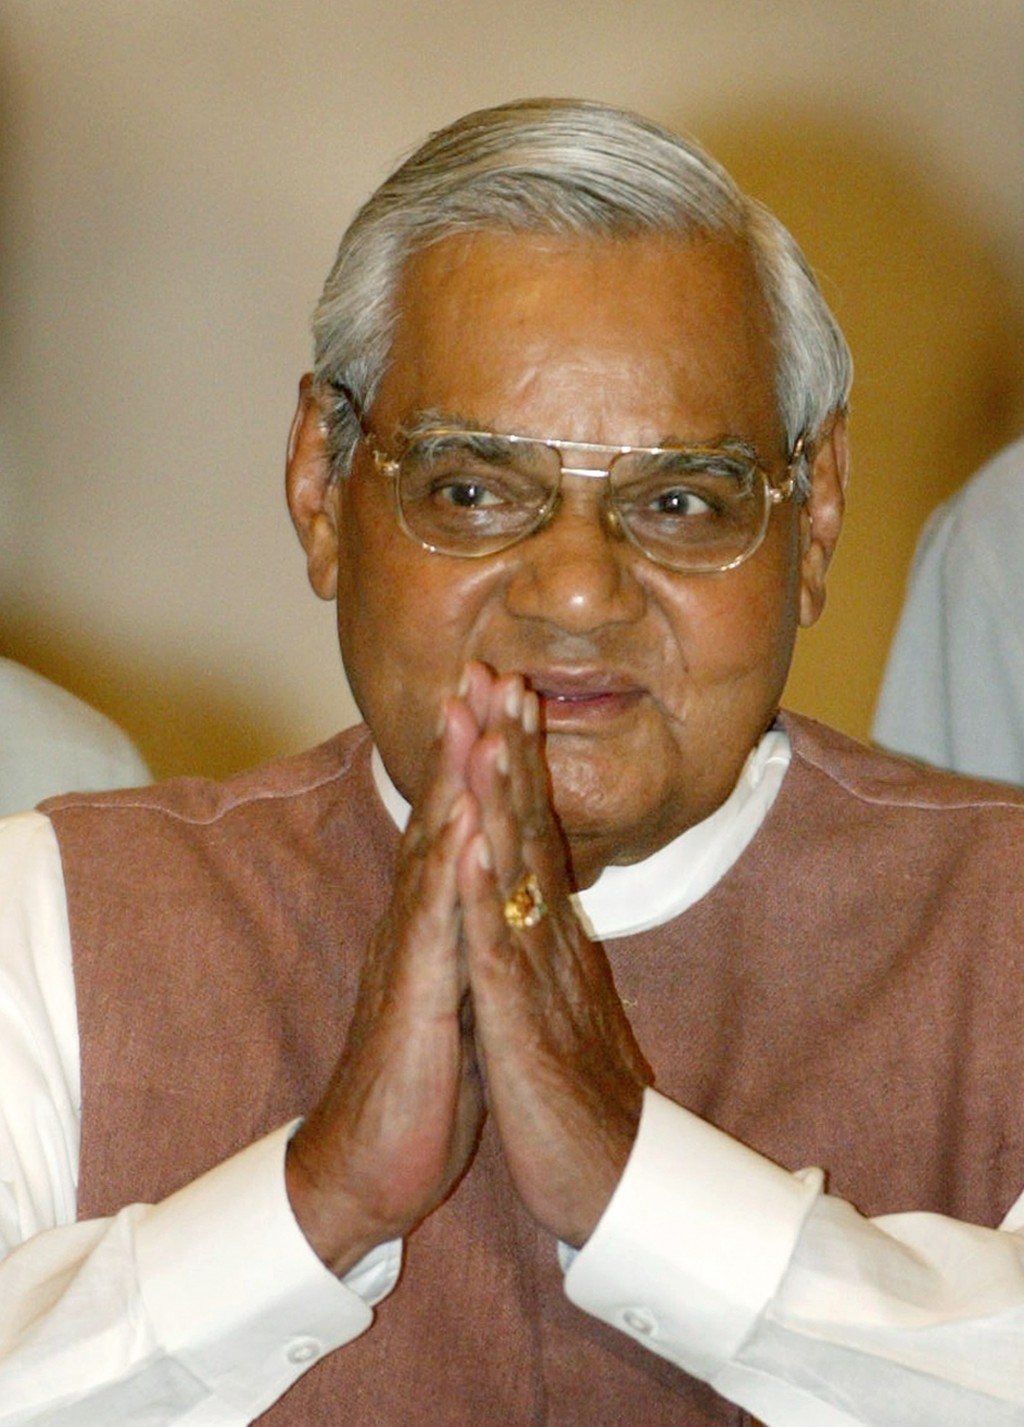 FILE - In this May 2, 2004 file photo, Indian Prime Minister Atal Bihari Vajpayee greets the audience as he arrives for a ceremony at the Presidential...